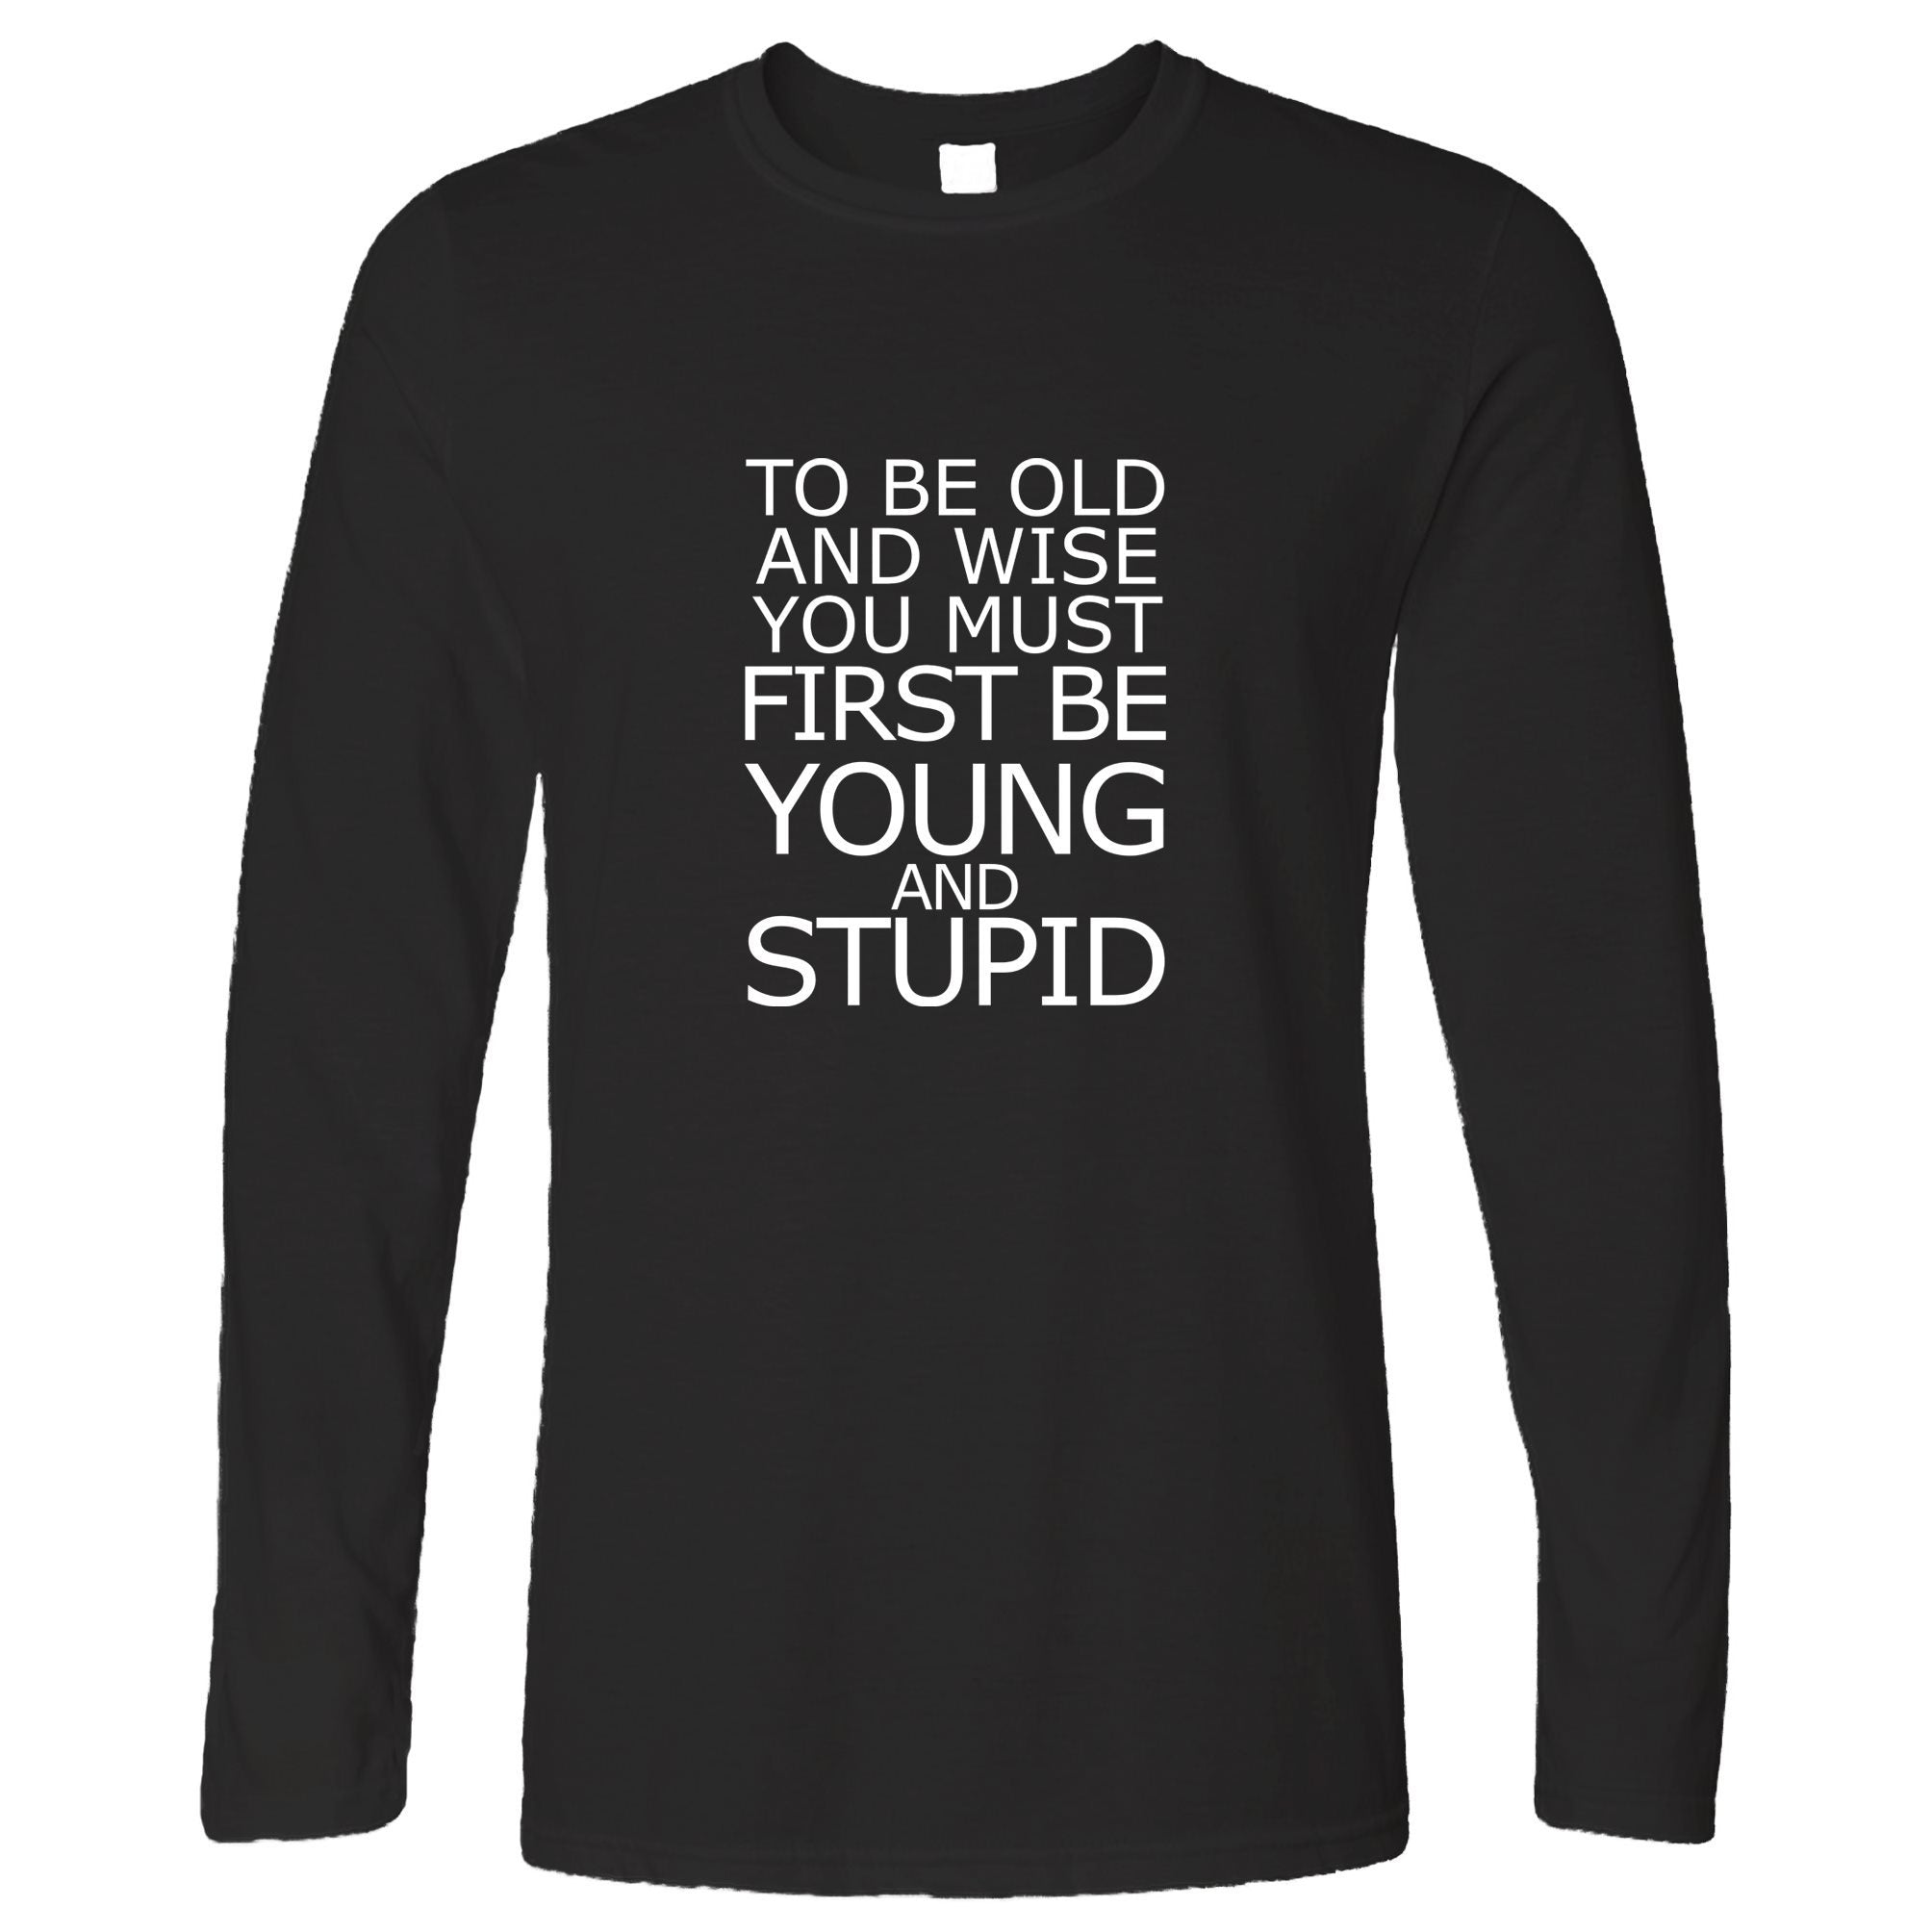 Joke Slogan Long Sleeve To Be Old And Wise T-Shirt